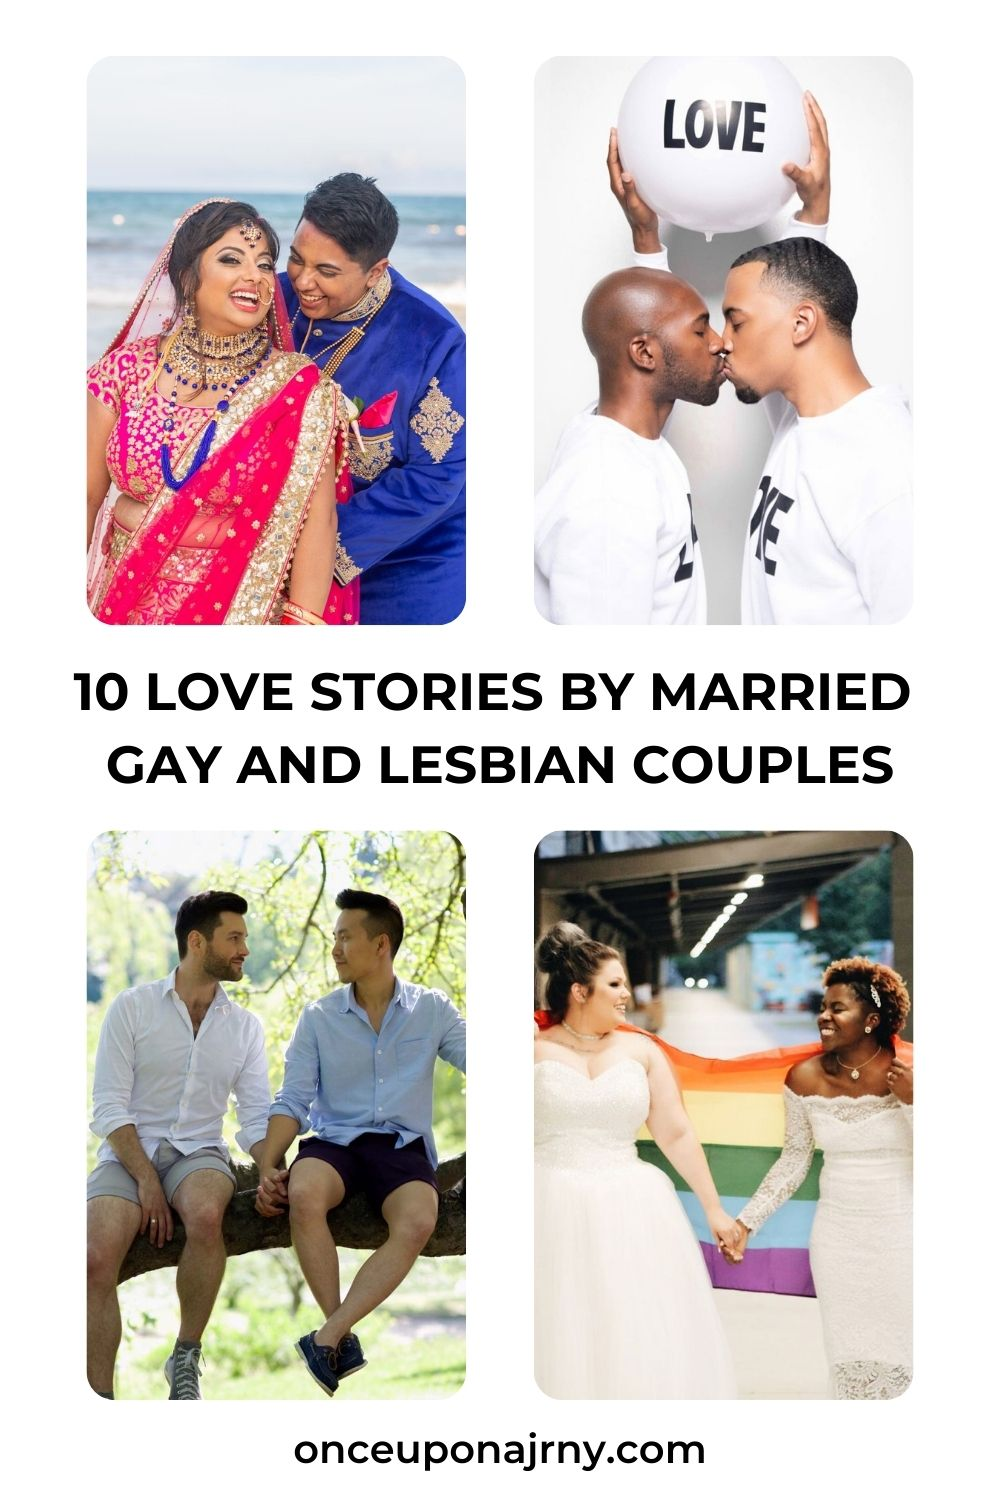 love stories by married gay and lesbian couples